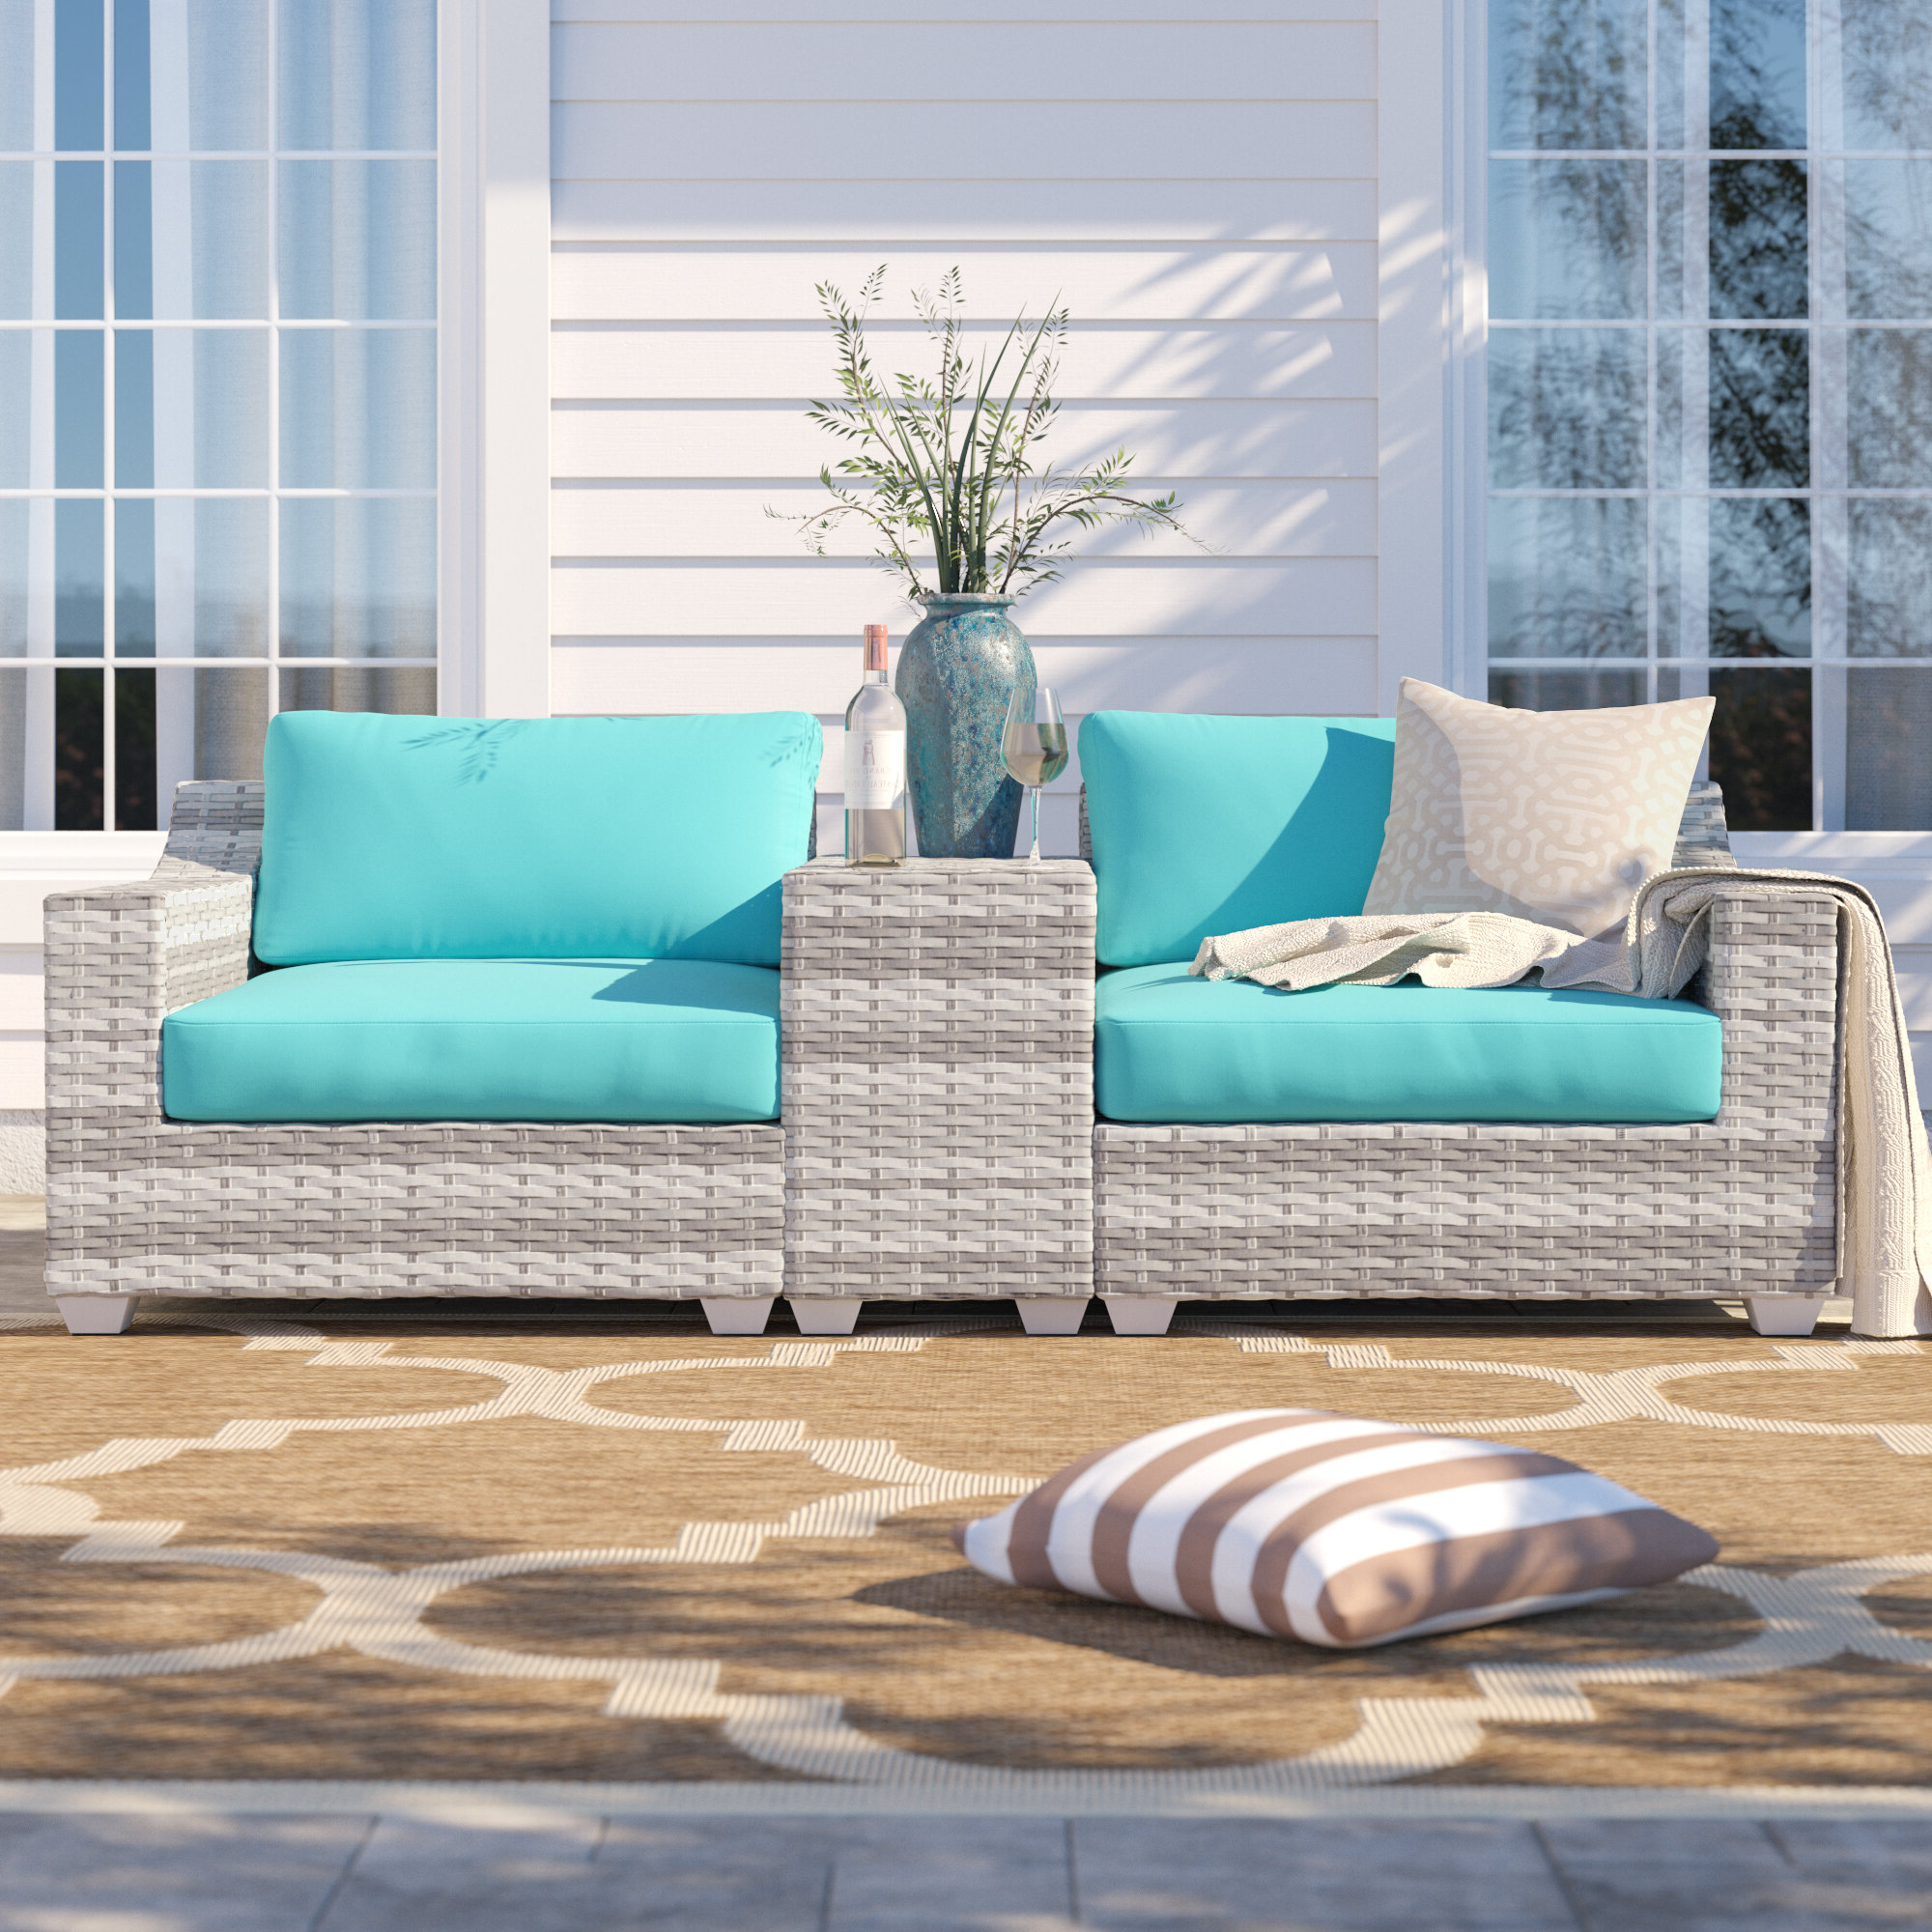 Most Current Falmouth Loveseats With Cushions With Regard To Falmouth 3 Piece Rattan Conversation Set With Cushions (View 9 of 20)